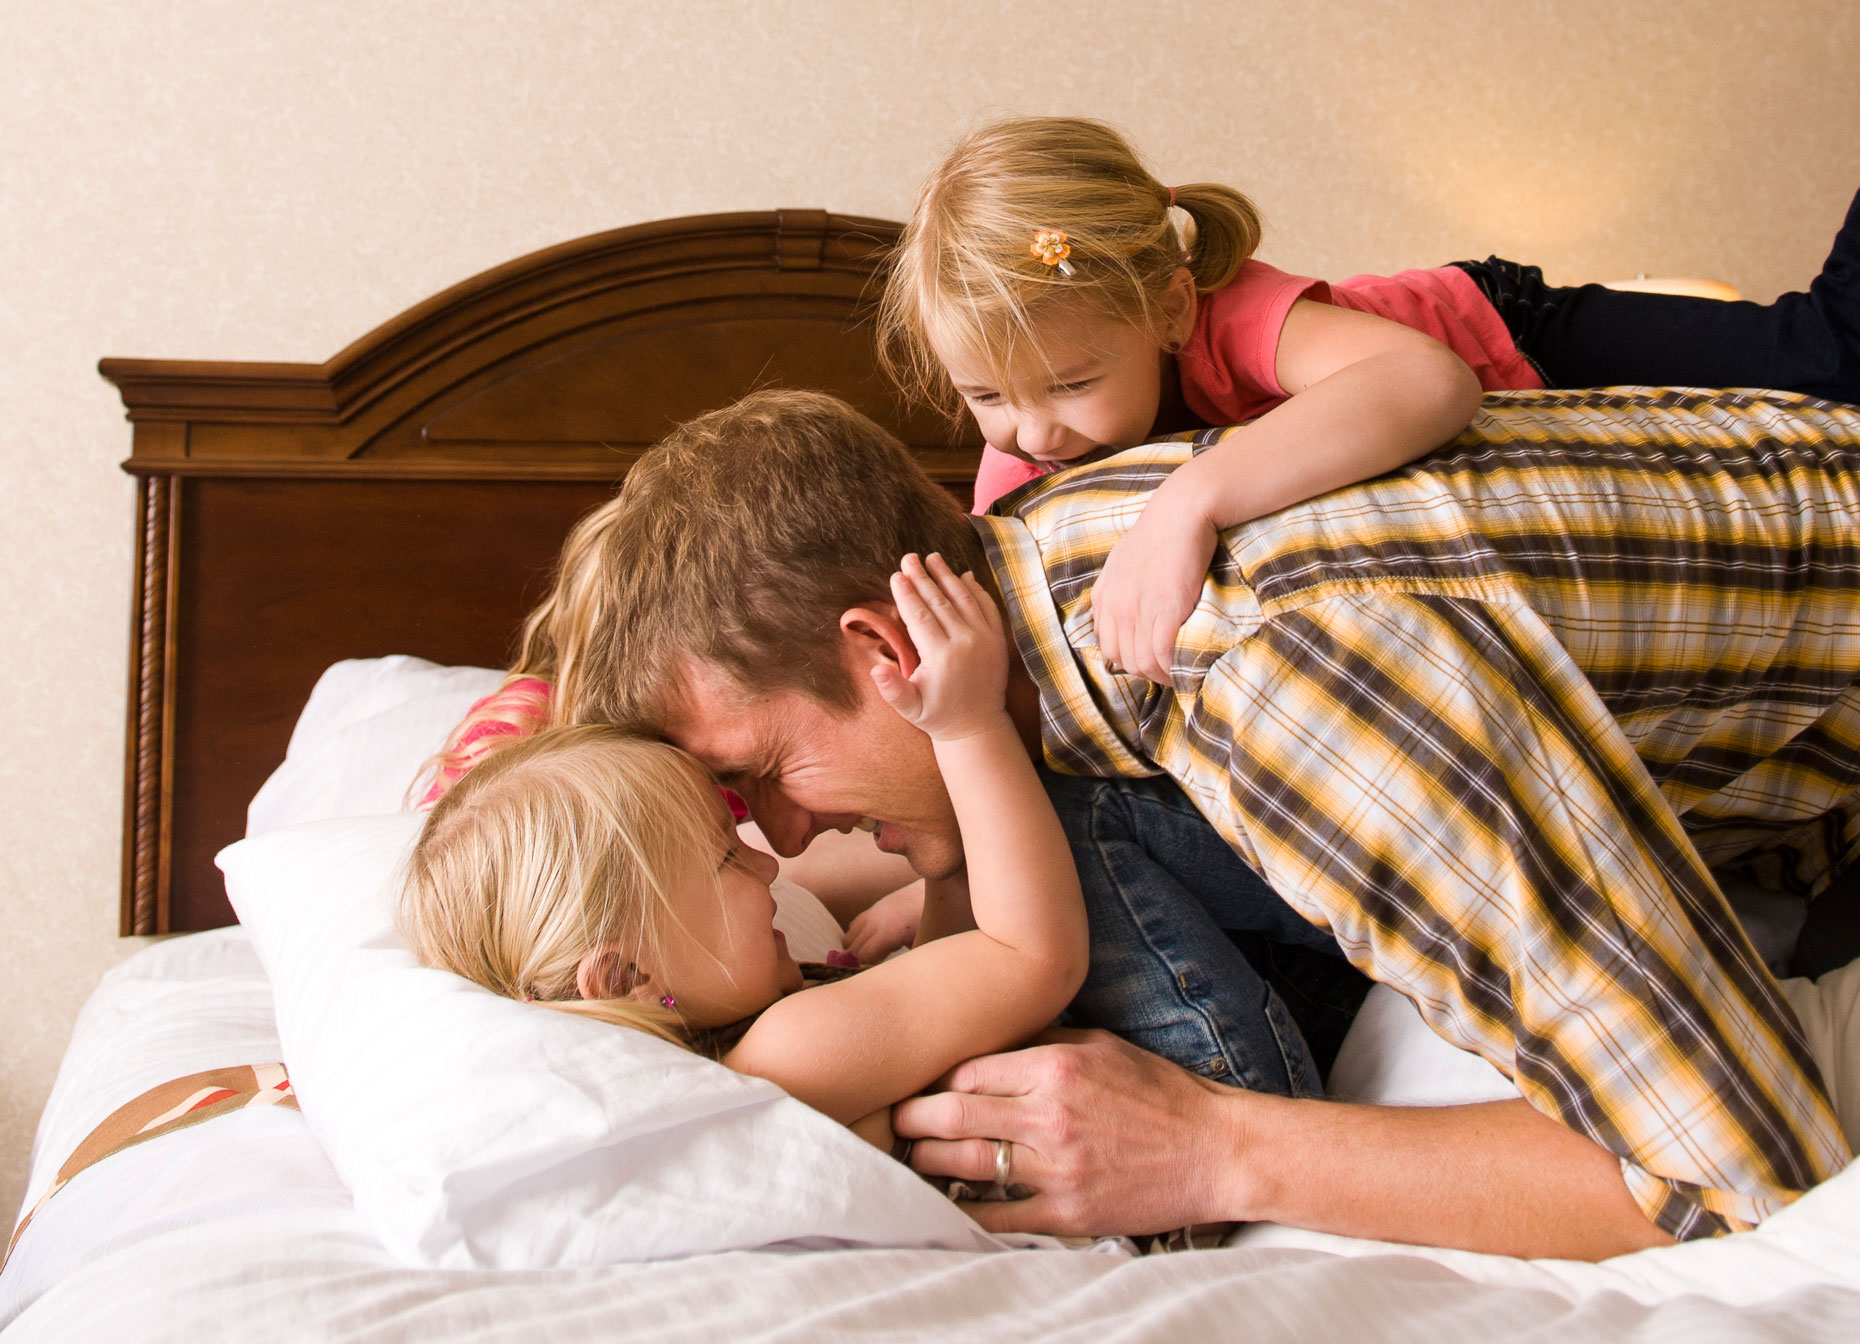 Active Lifestyle-Family having fun and laughing on bed